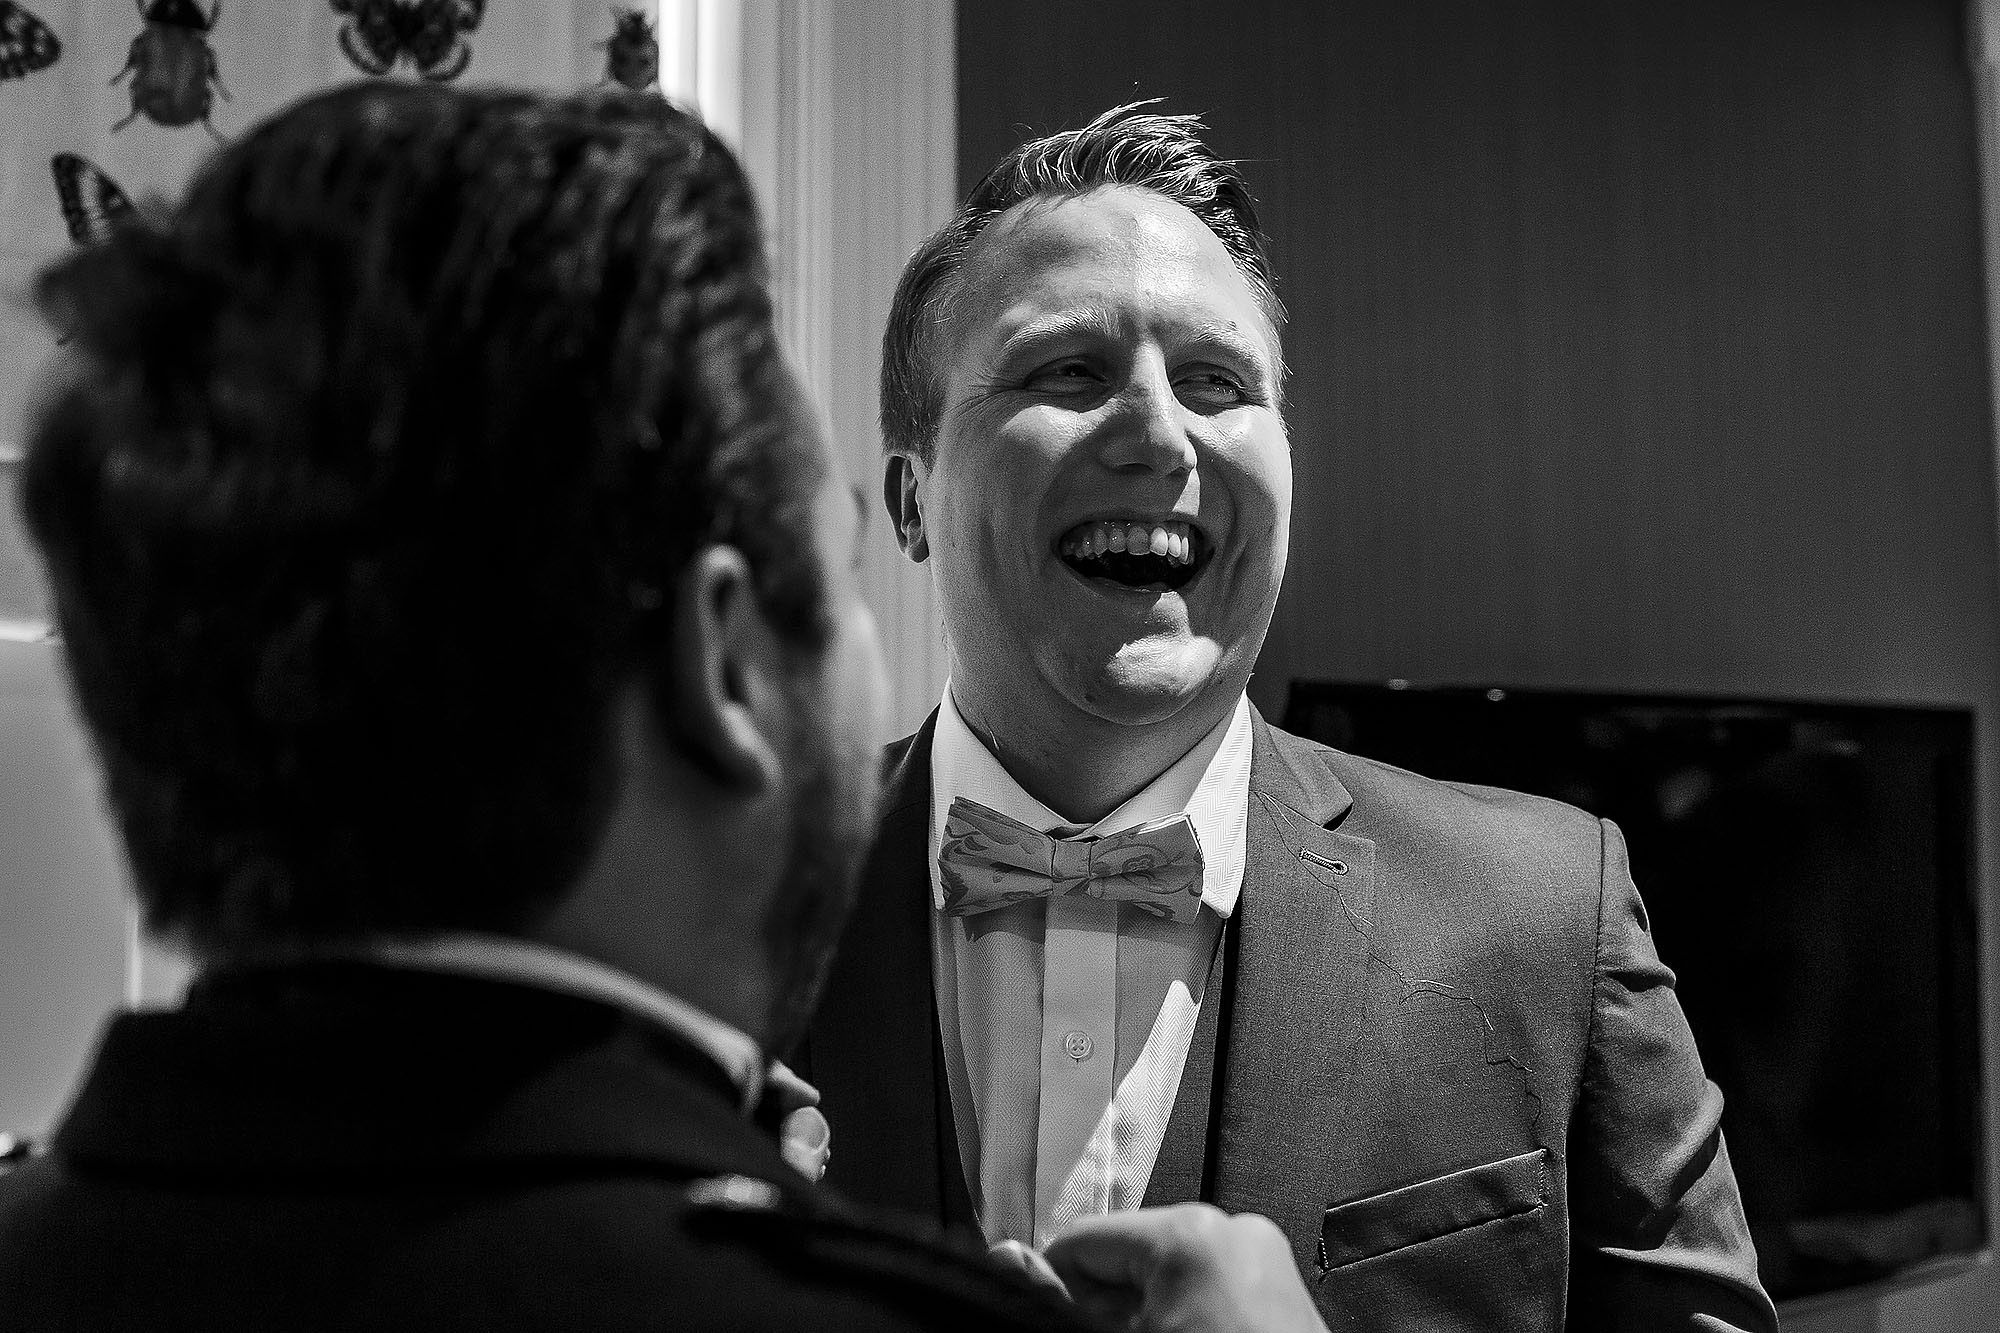 Groom wearing bow tie laughing as his suit is adjusted | Mitton Hall wedding photographs by Toni Darcy Photography